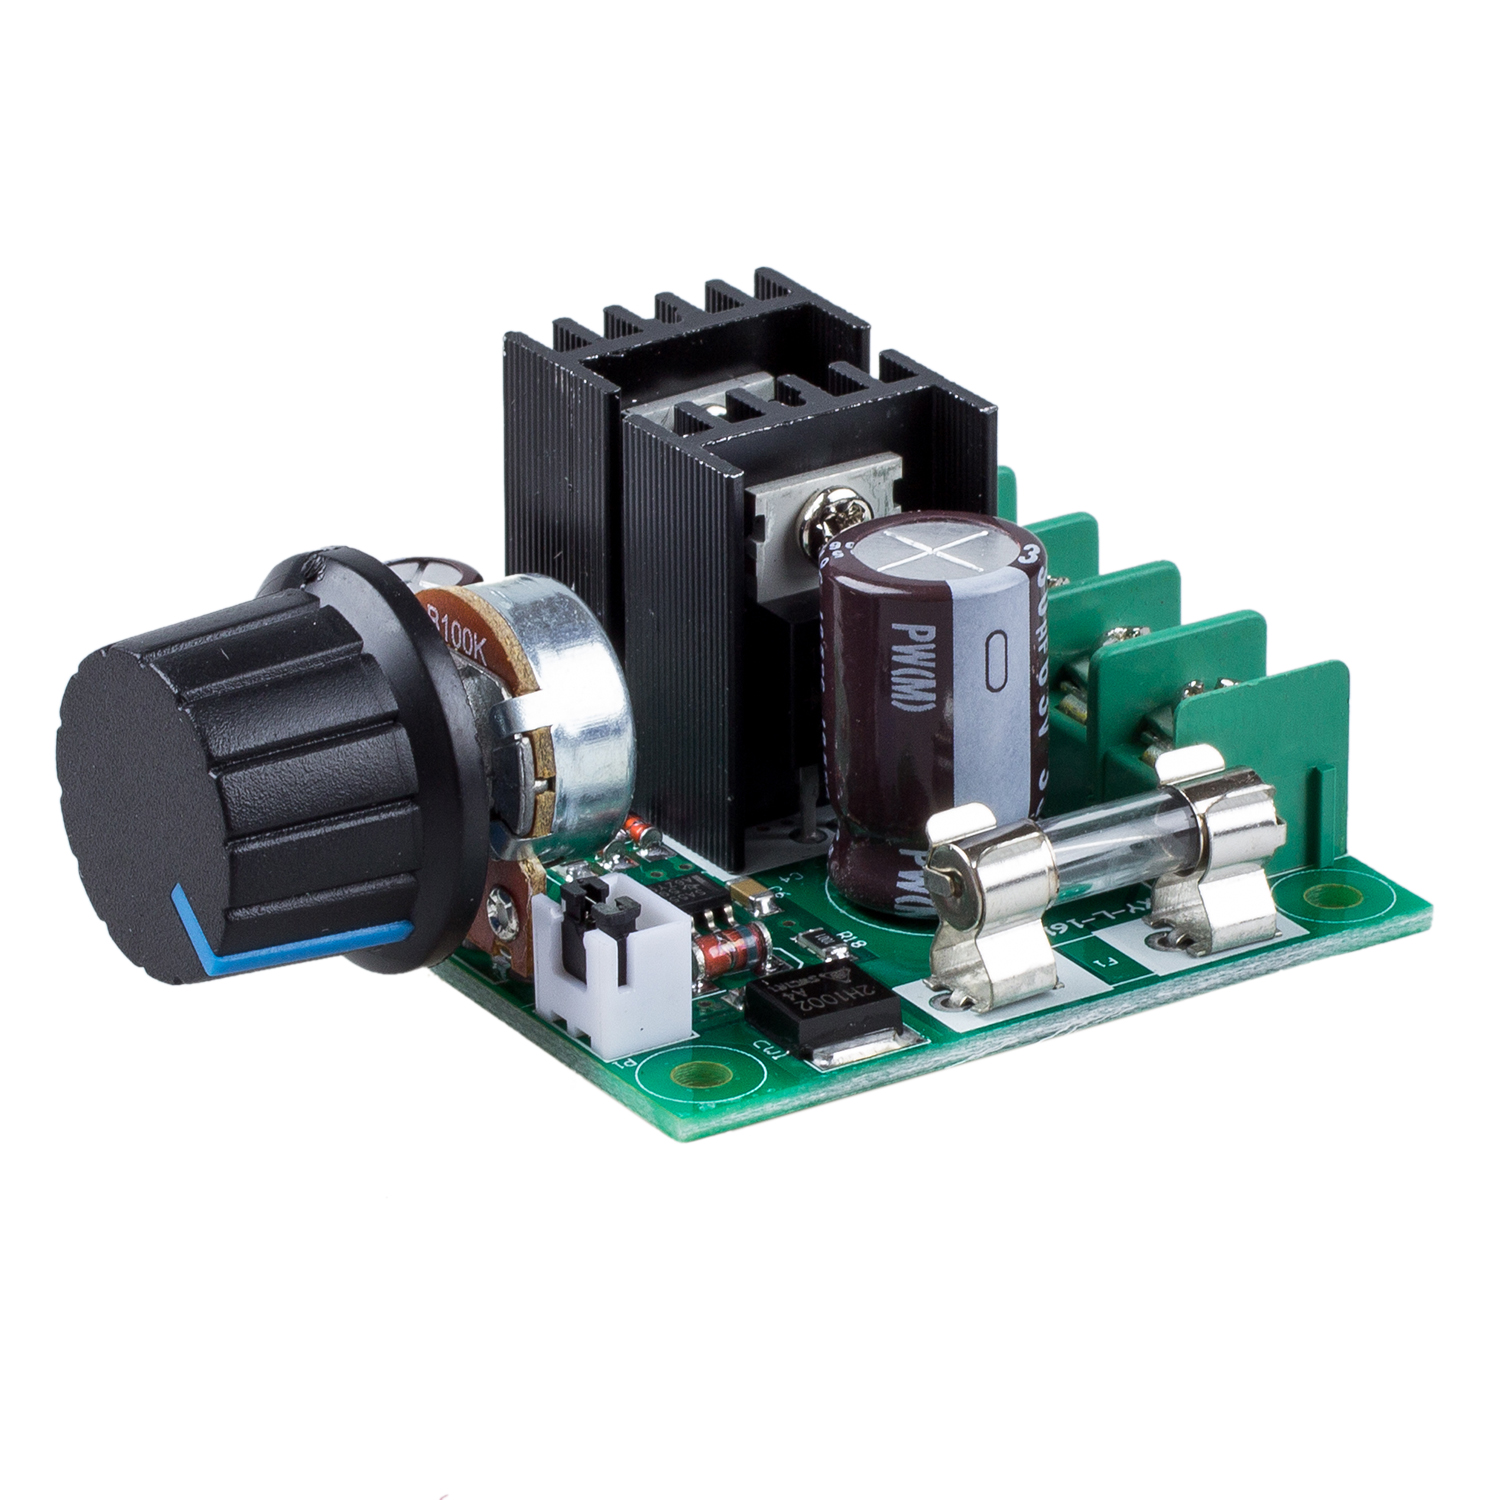 12v 40v 10a pwm dc motor speed controller with knob bt ebay for Speed control electric motor